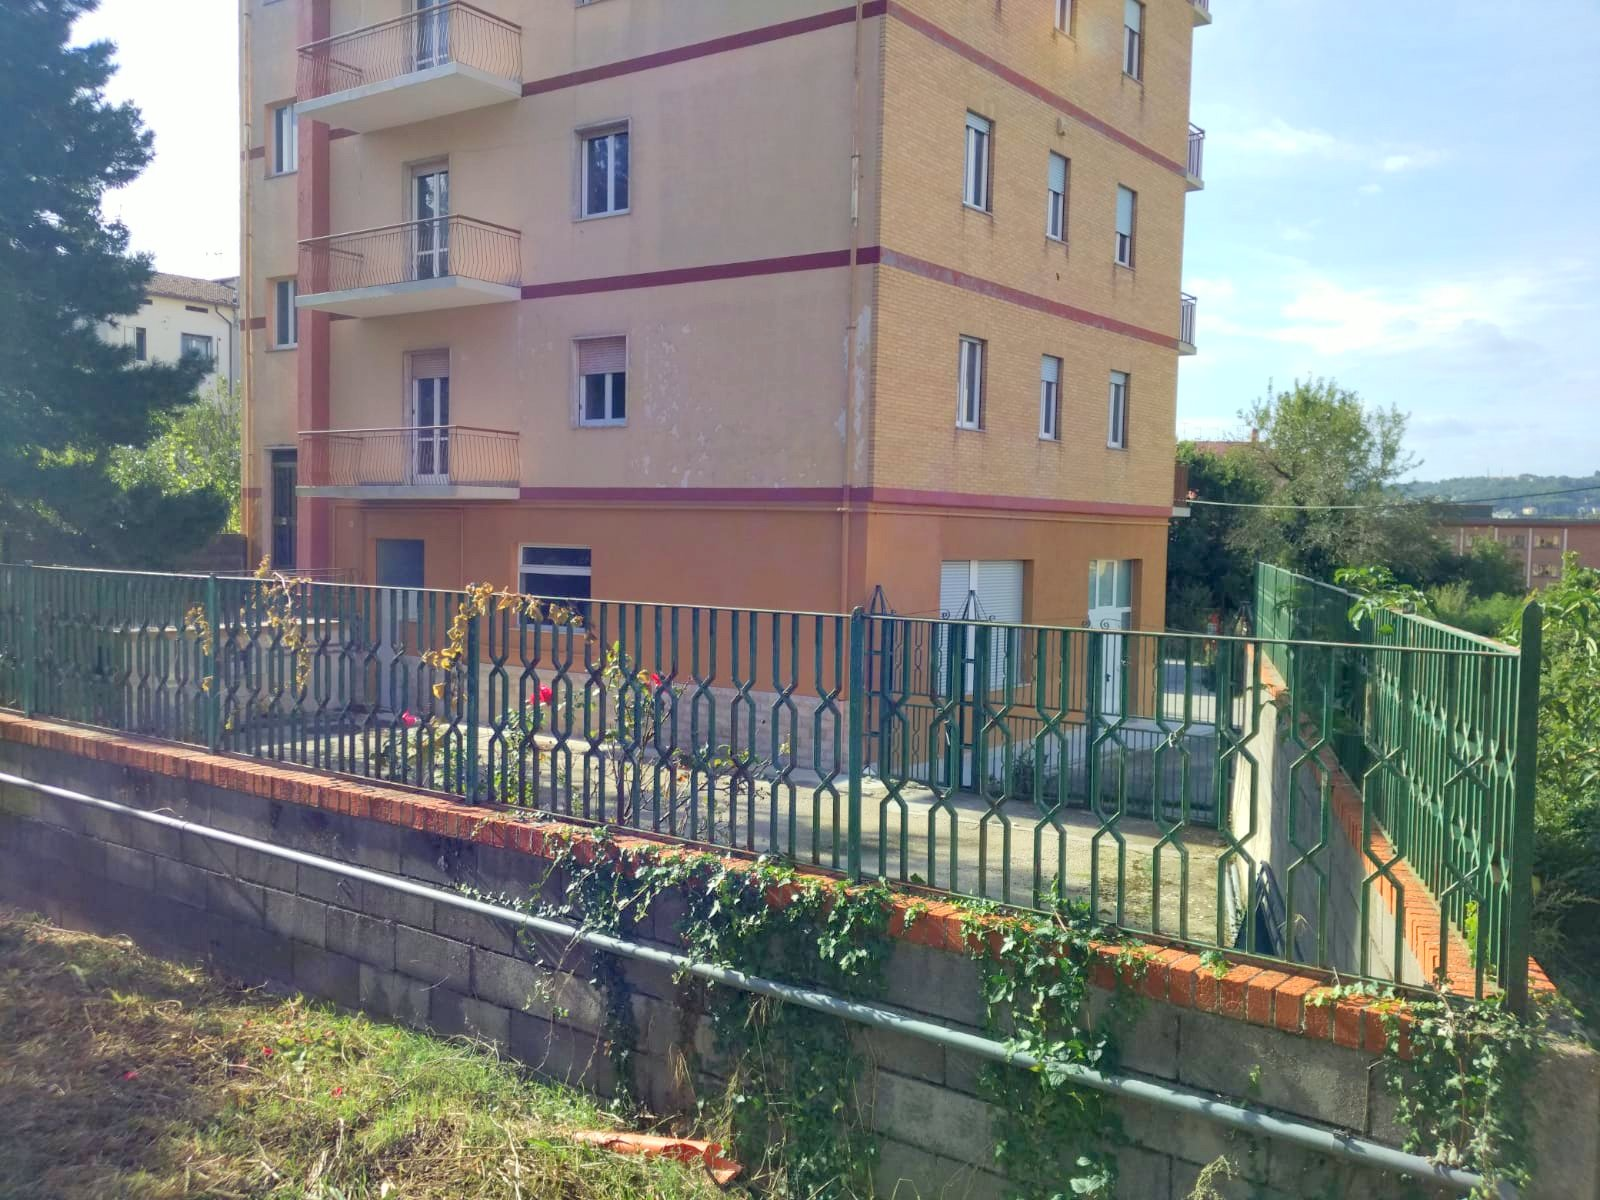 LOCALE COMMERCIALE – VIA PIAVE